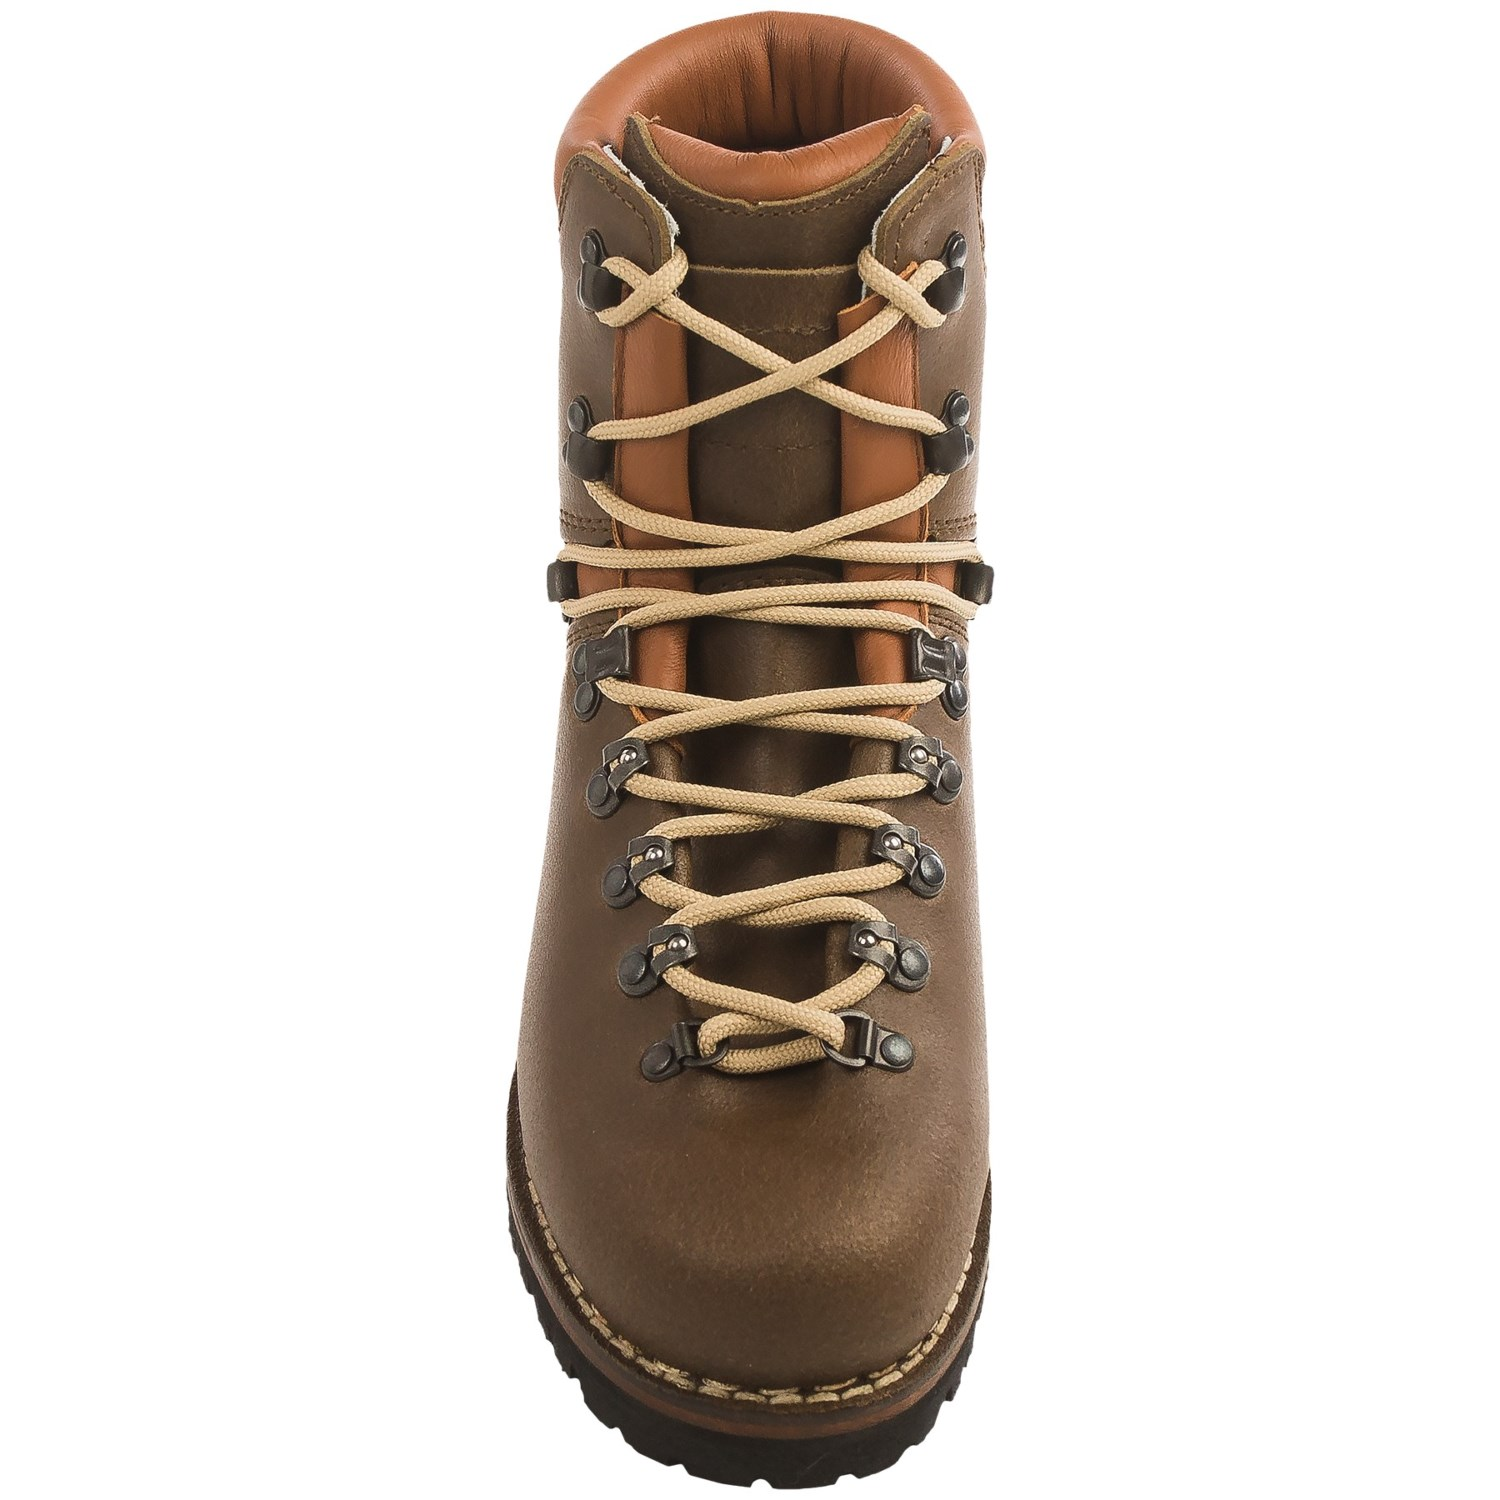 ed40902ed64 Alico Made in Italy New Guide Mountaineering Boots - Leather (For Men)